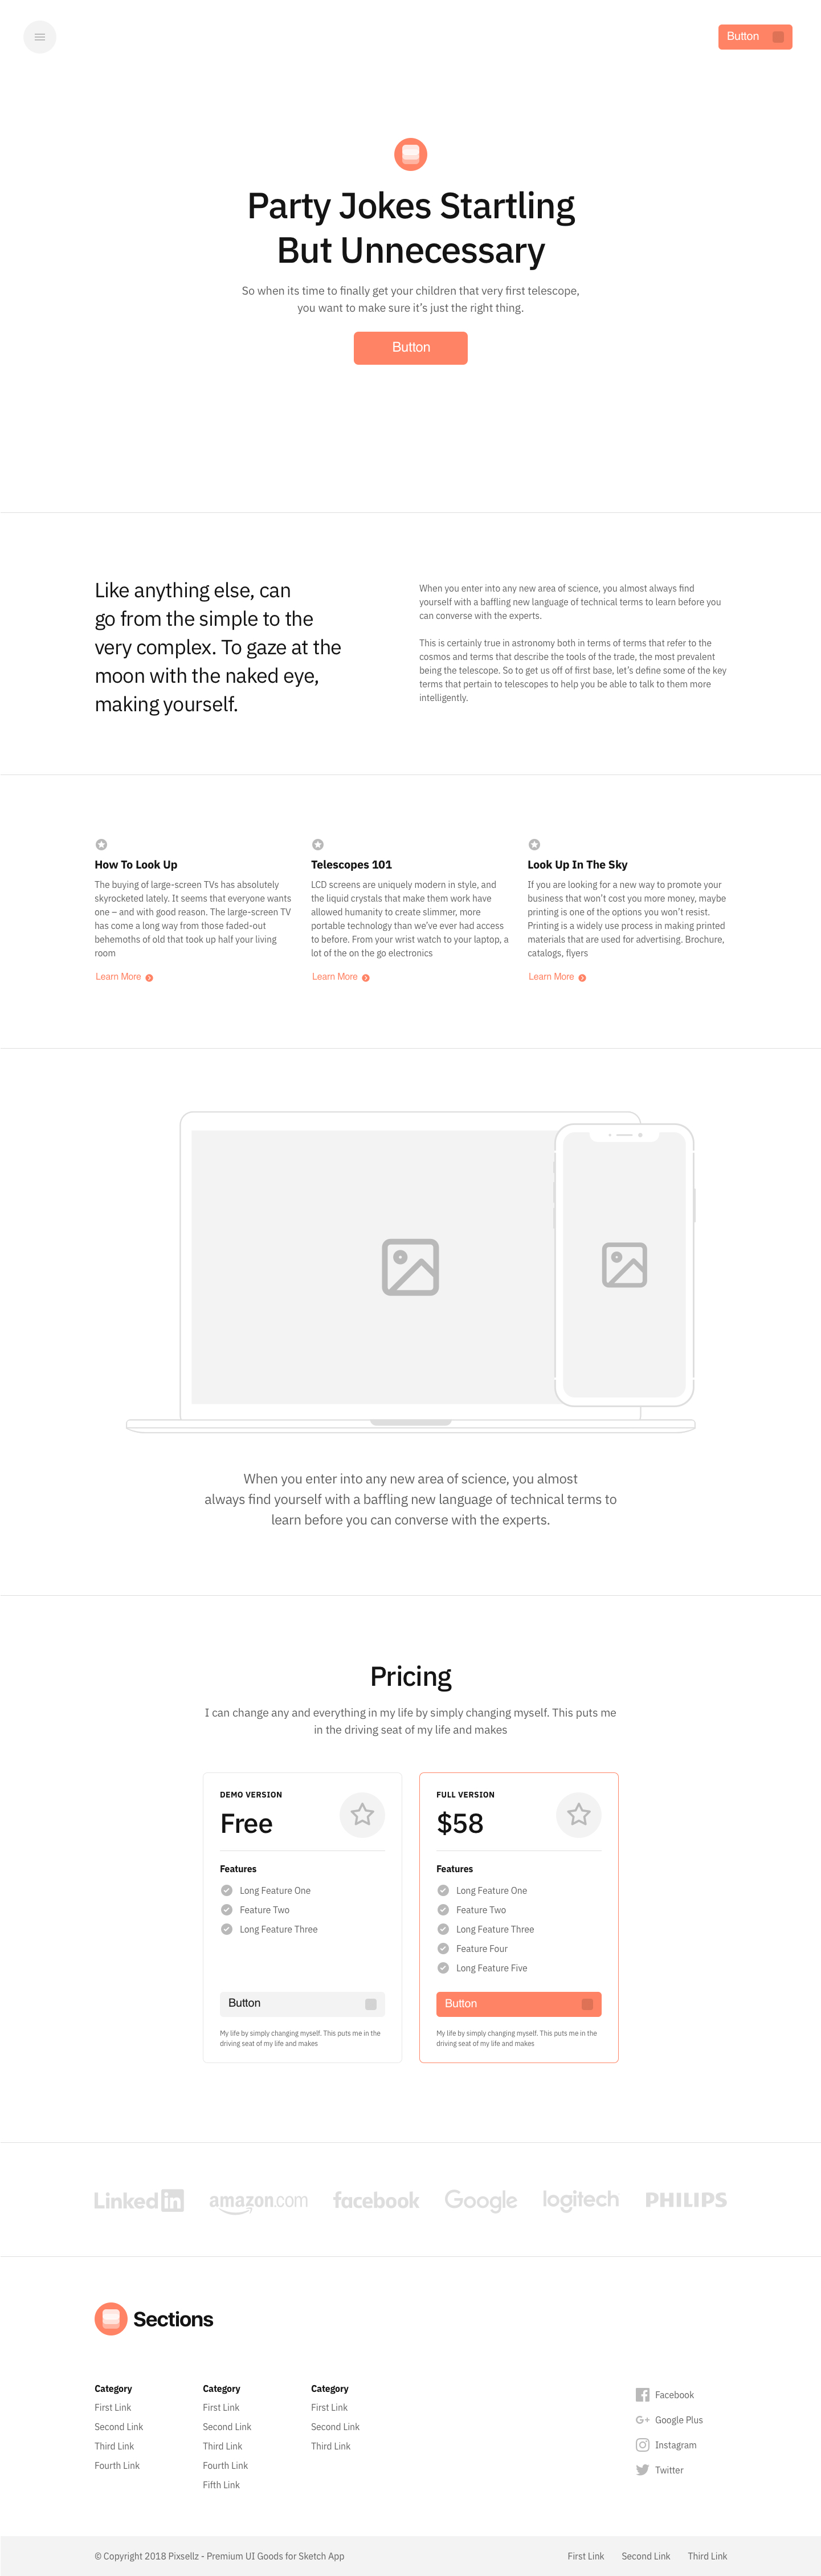 Sections - Landing Pages Wireframe Kit - Sections is made up of a large set of screens consisting of popular categories. This web UX screens will help you quickly create a prototype for web services.